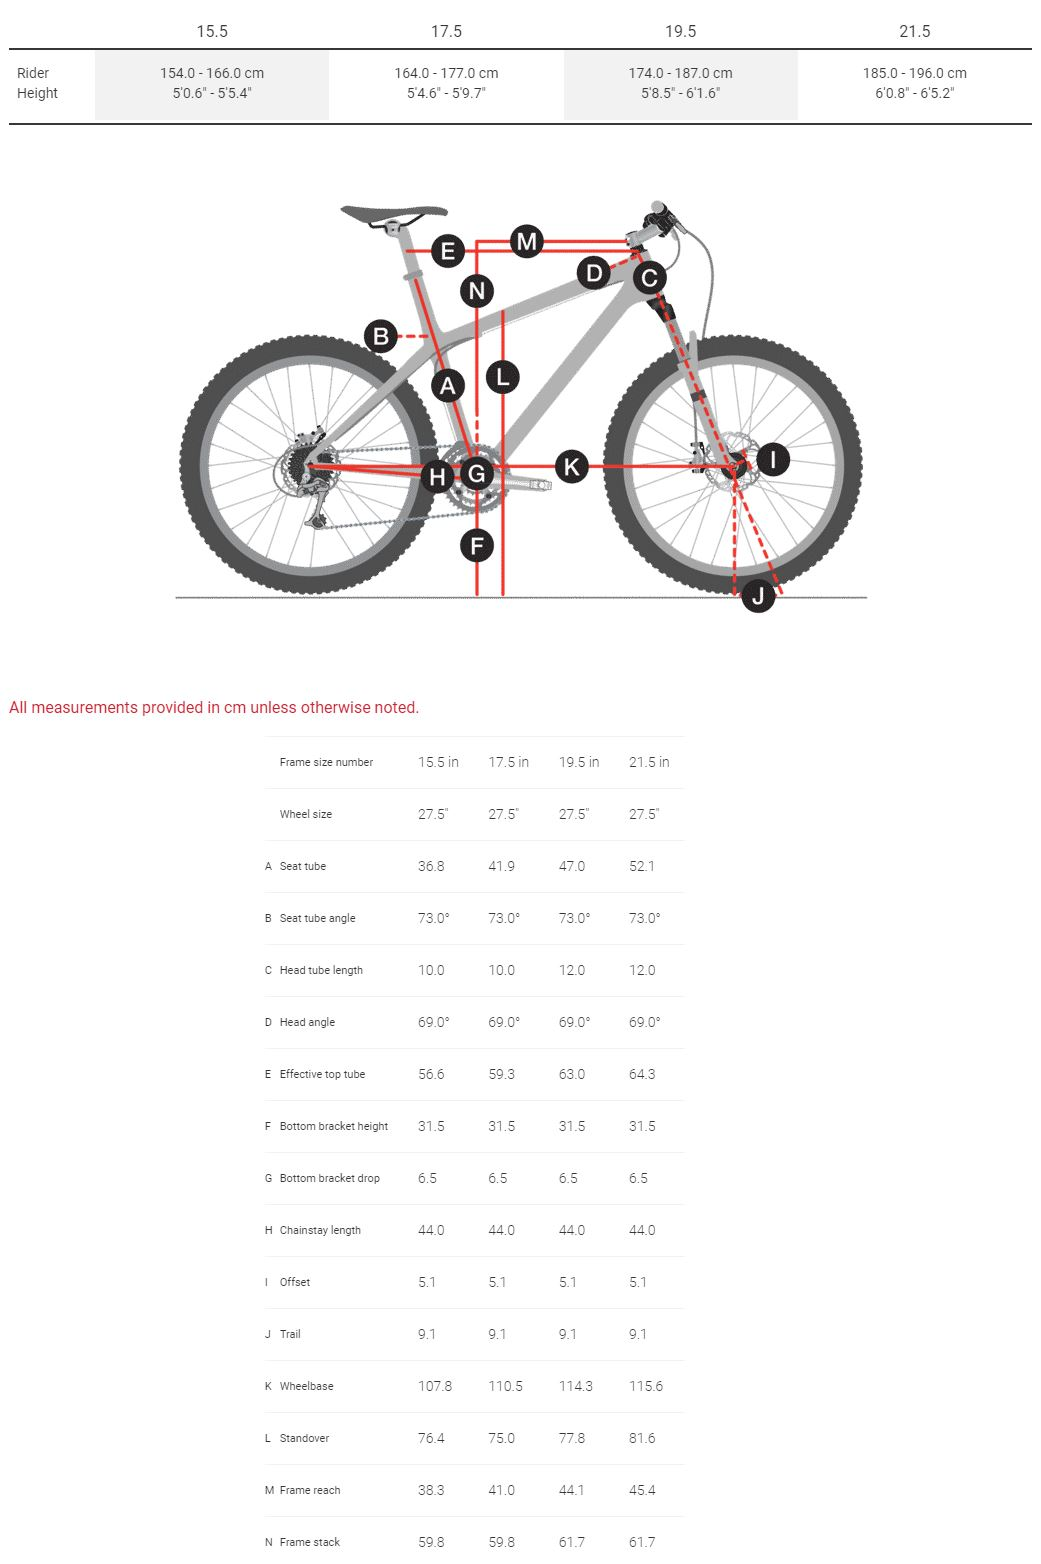 Trek Farley Geometry Chart